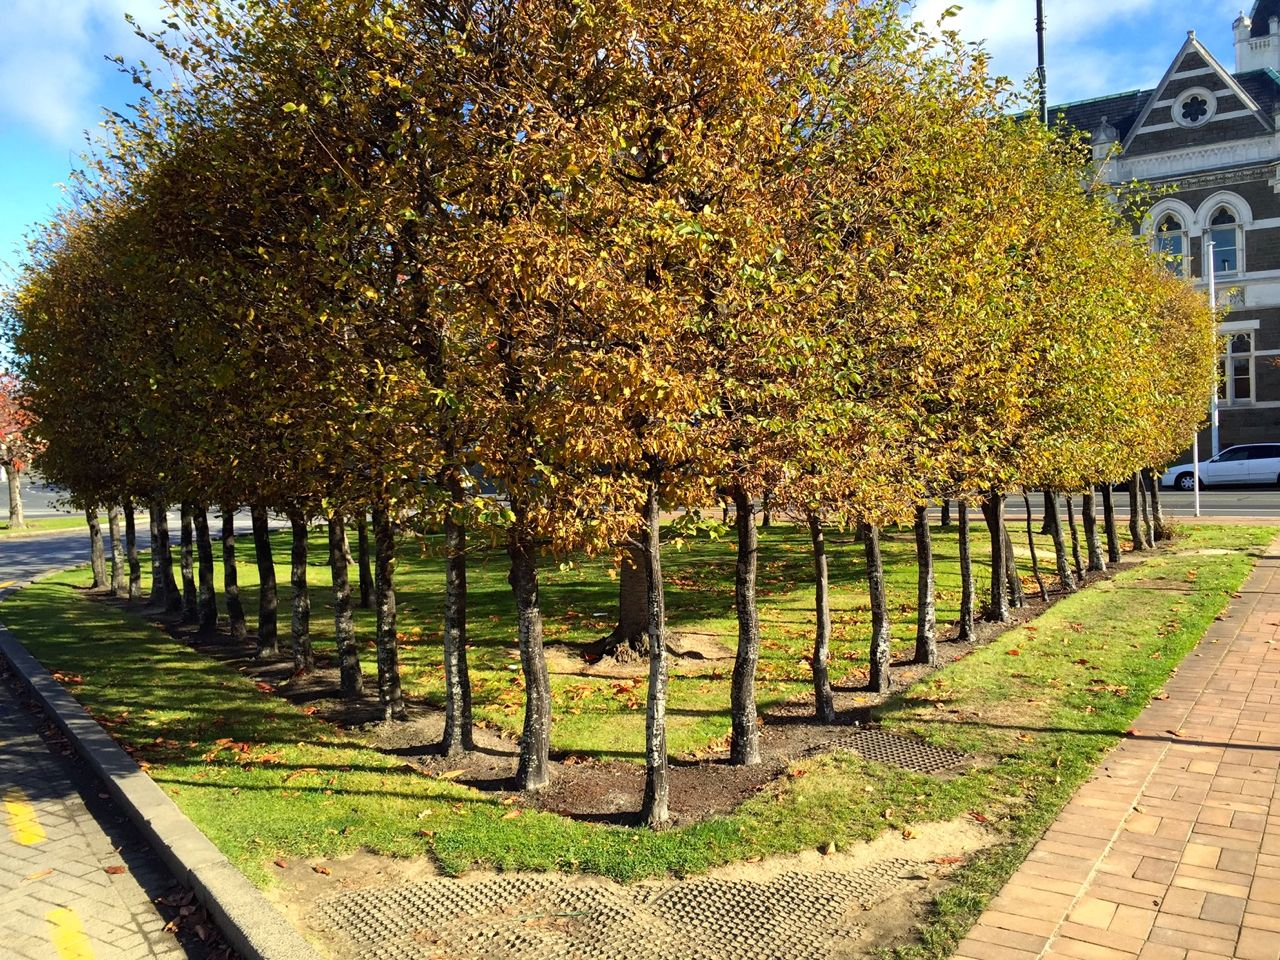 New Zealanders plant trees in the most gorgeous arrangements, all over the cities and countryside.